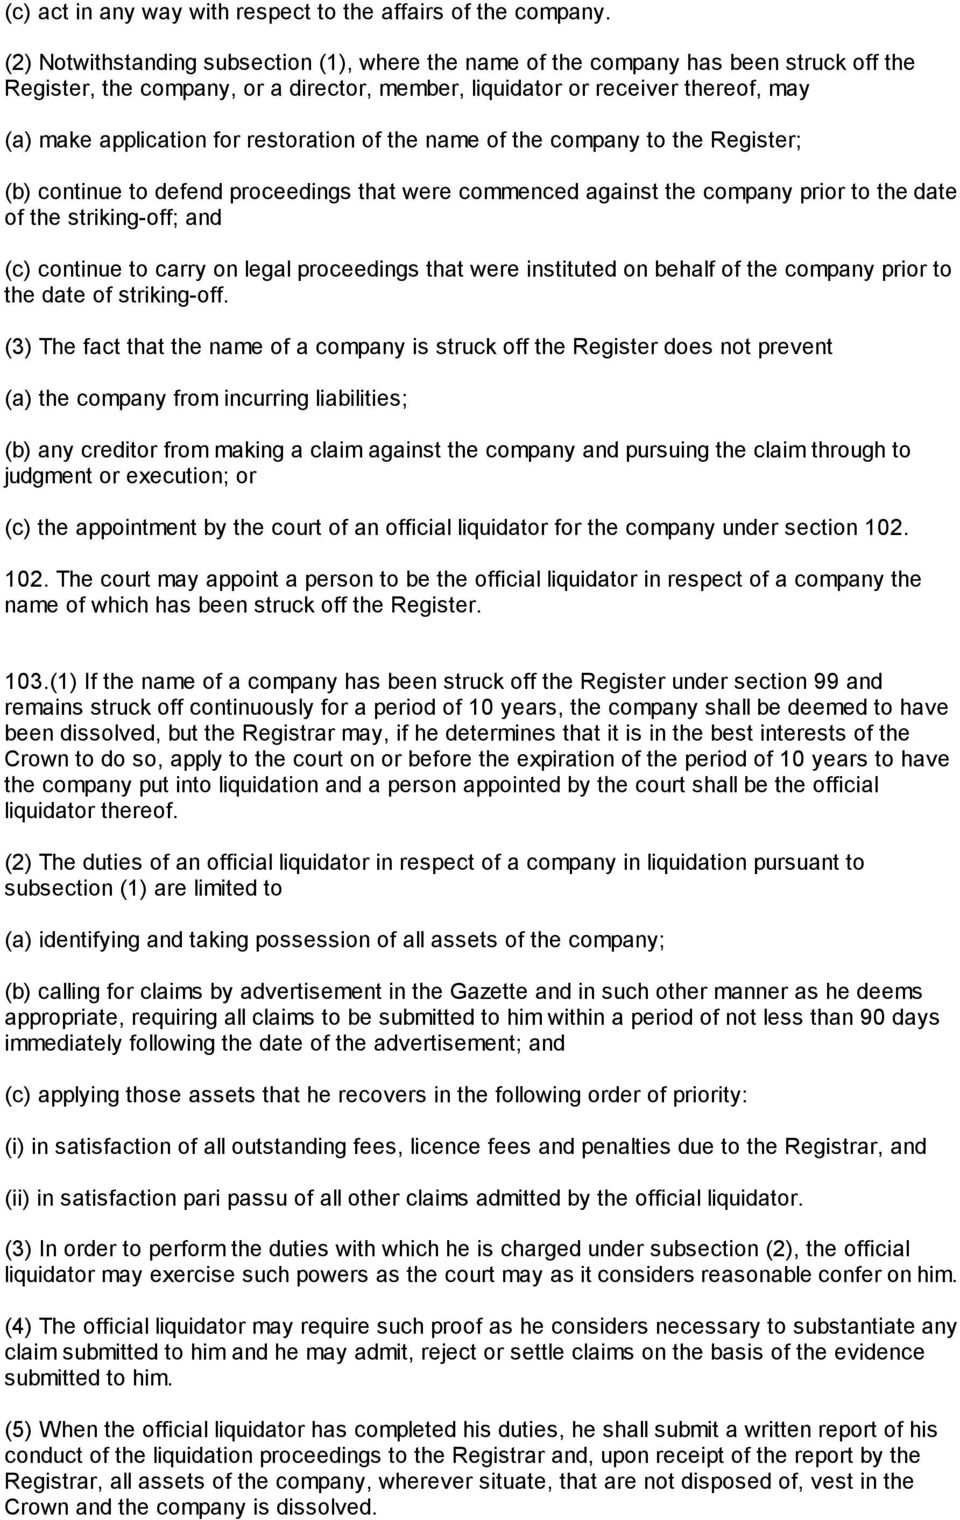 restoration of the name of the company to the Register; (b) continue to defend proceedings that were commenced against the company prior to the date of the striking-off; and (c) continue to carry on